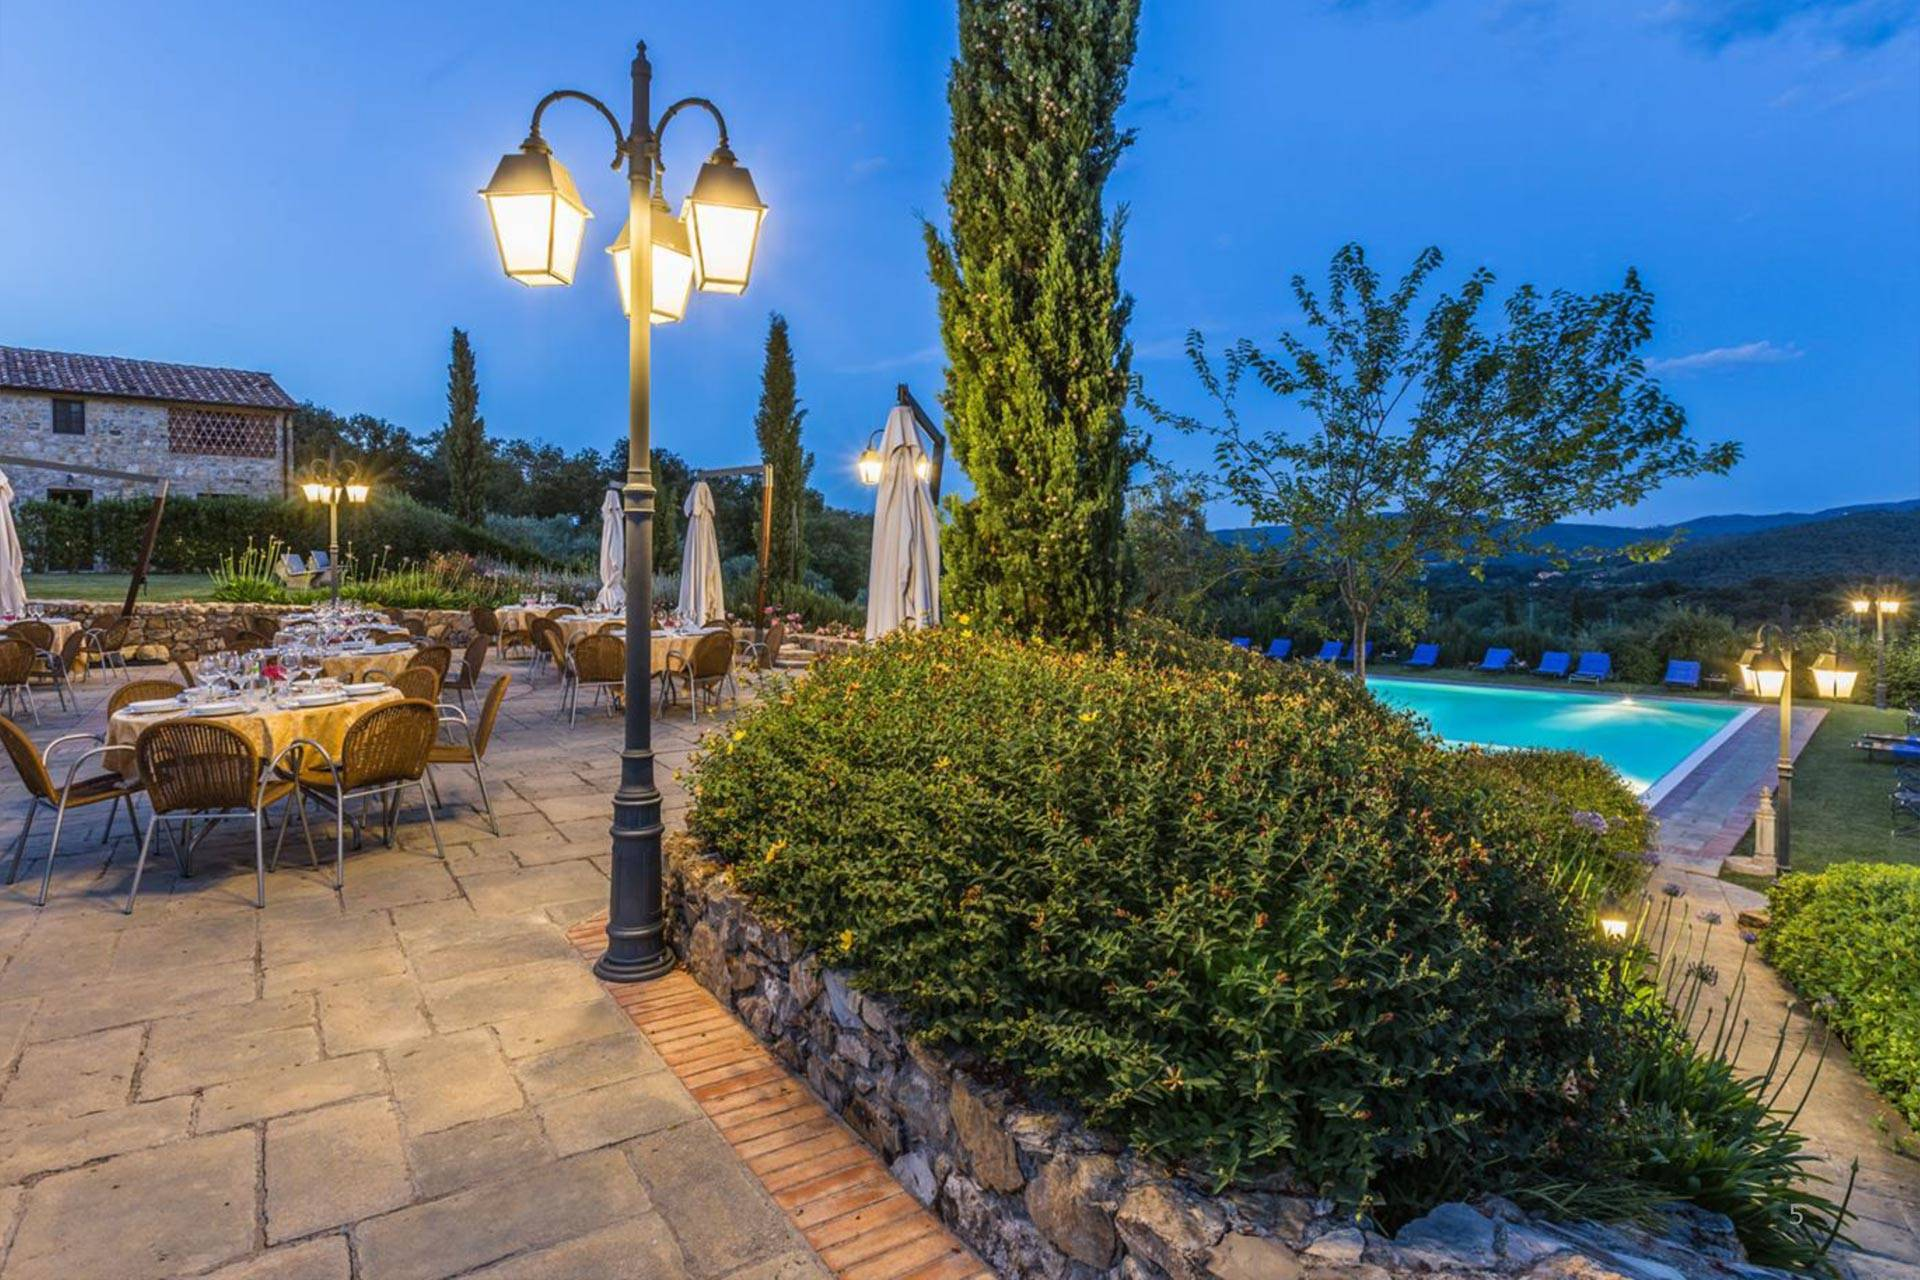 In a magical setting overlooking the valley called Val d'Ambra (Arezzo, Tuscany), we offer a wonderful property consisting of 17 units spread over